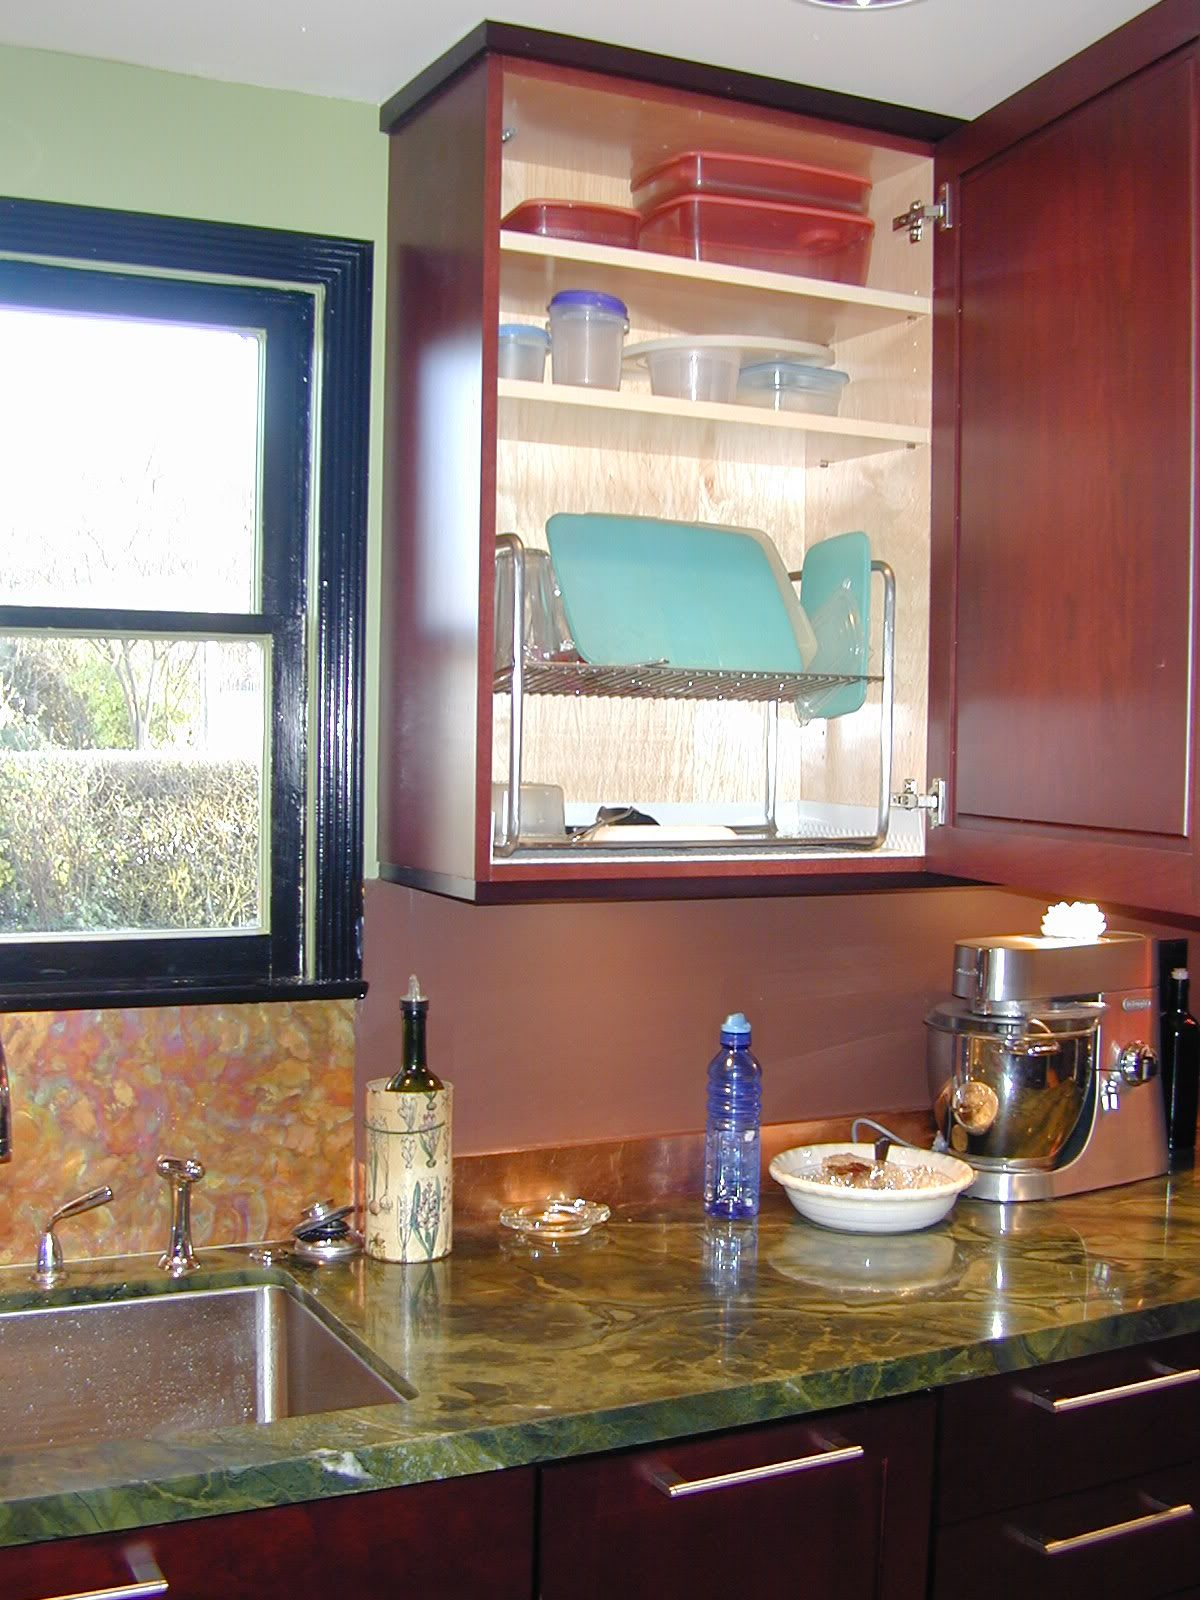 Cabinets Above And Below Sink And Your Dish Drainer Dish Drainers Kitchen Kitchen Dishes